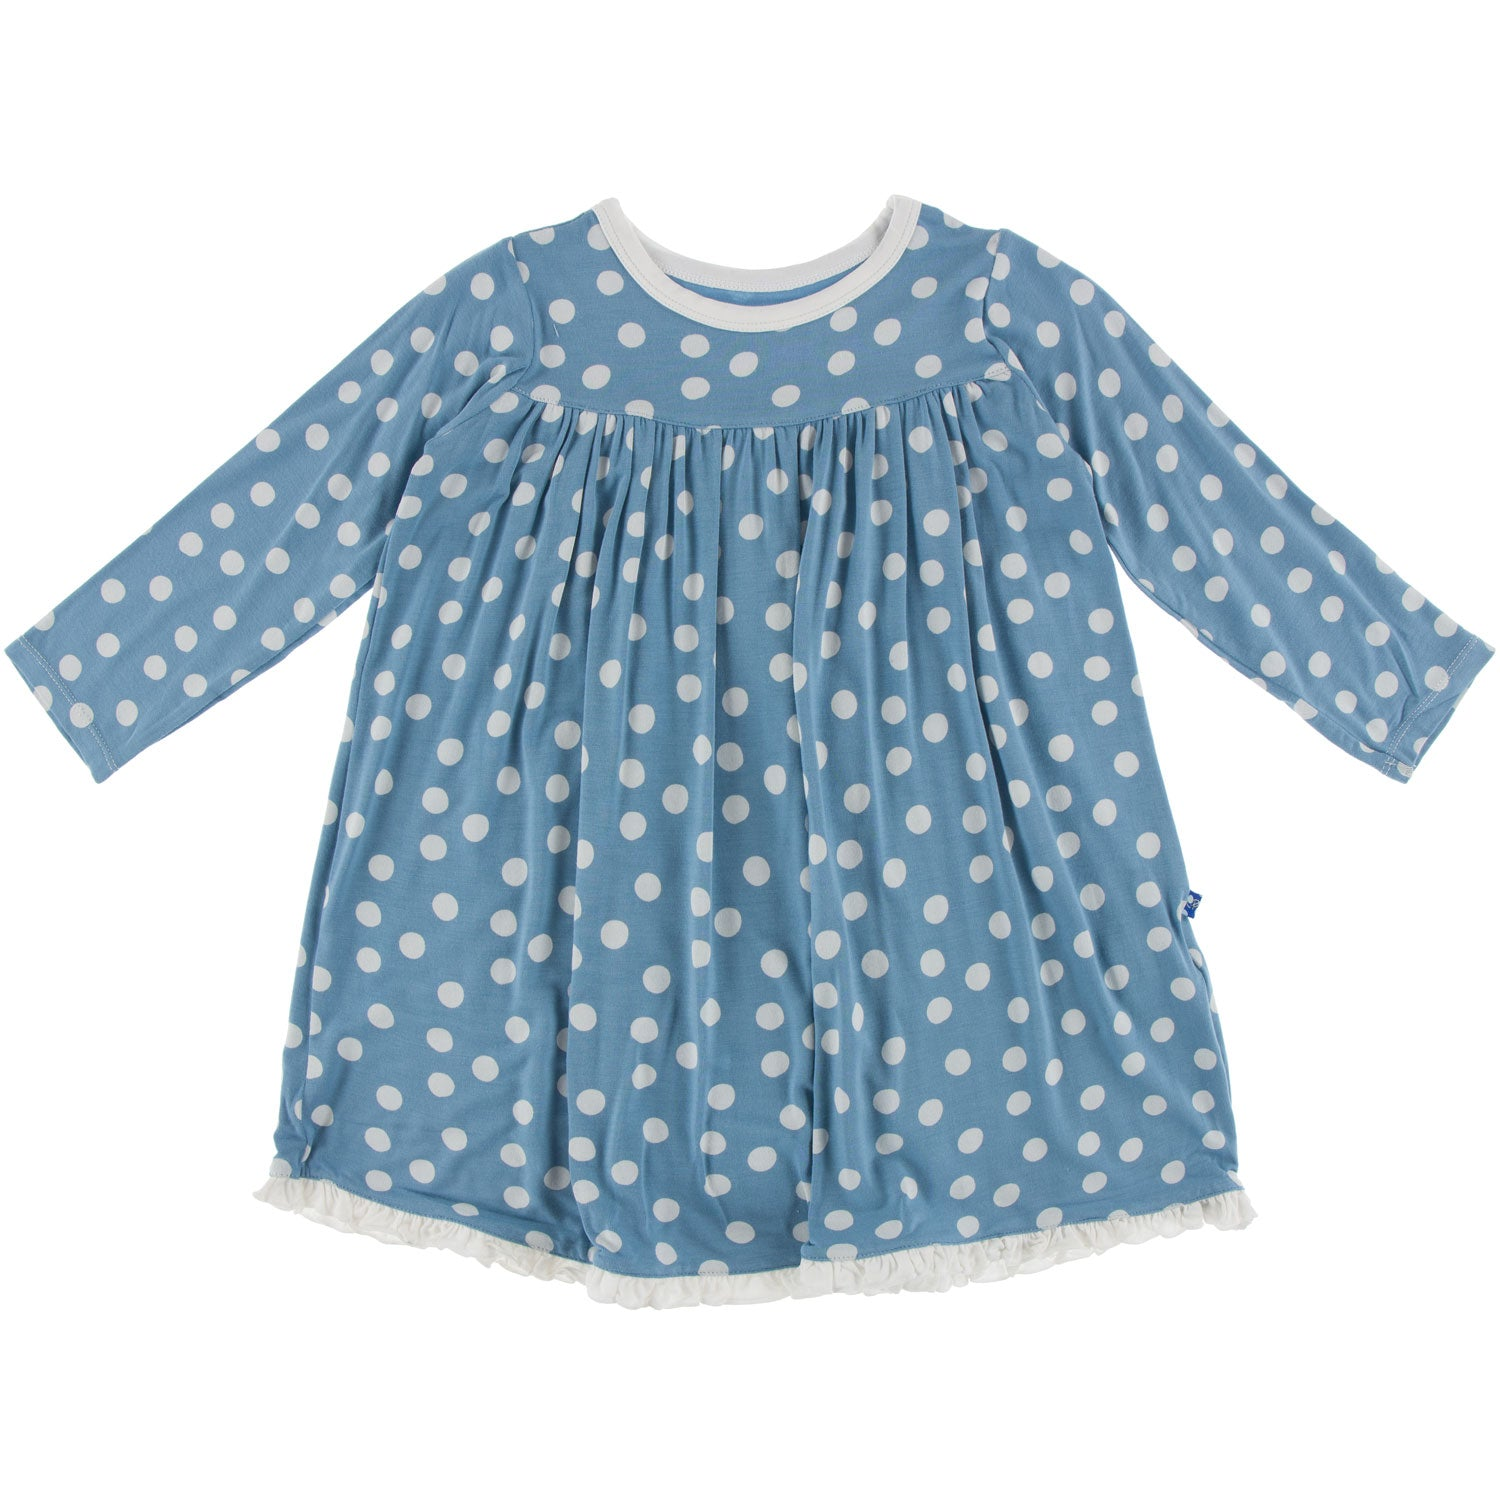 KicKee Pants Swing Dress - Blue Moon Snowballs